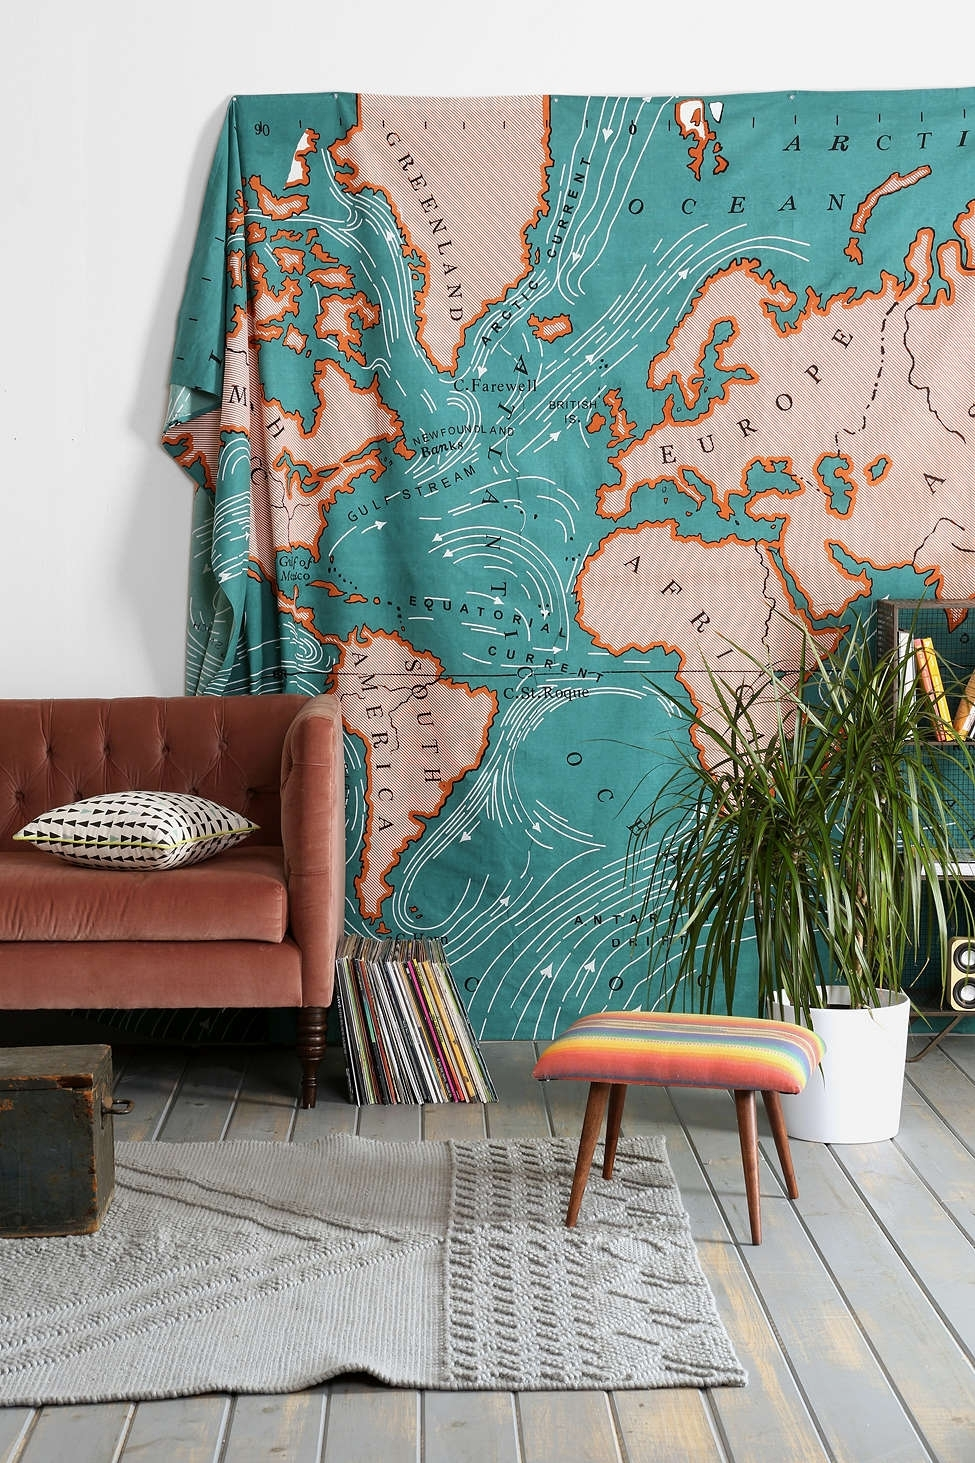 Spice Up Your Space: 20 Living Room Wall Decor Ideas Throughout Best And Newest Fabric Wall Art Urban Outfitters (View 8 of 15)